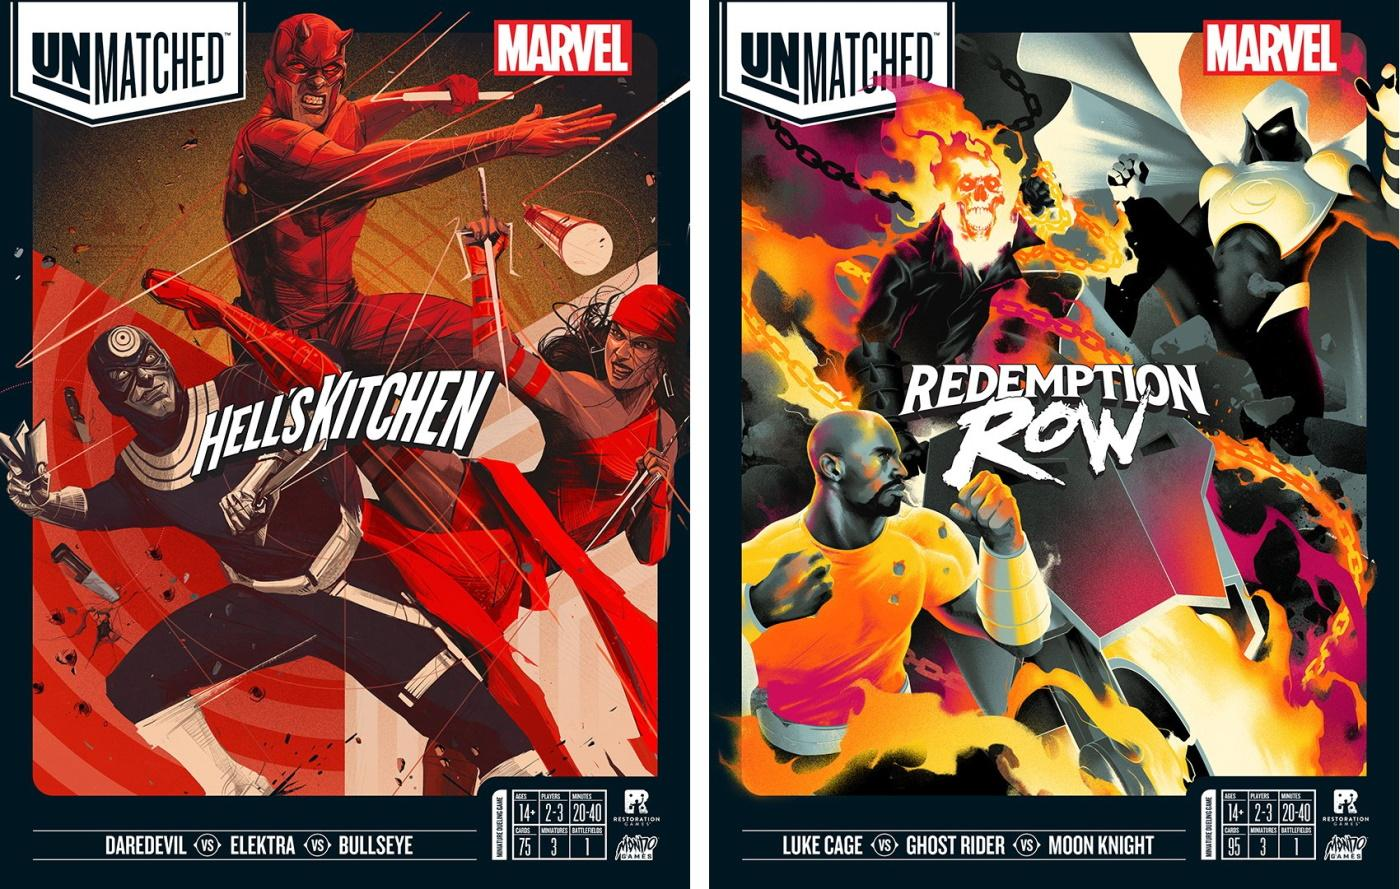 Marvel Unmatched board games